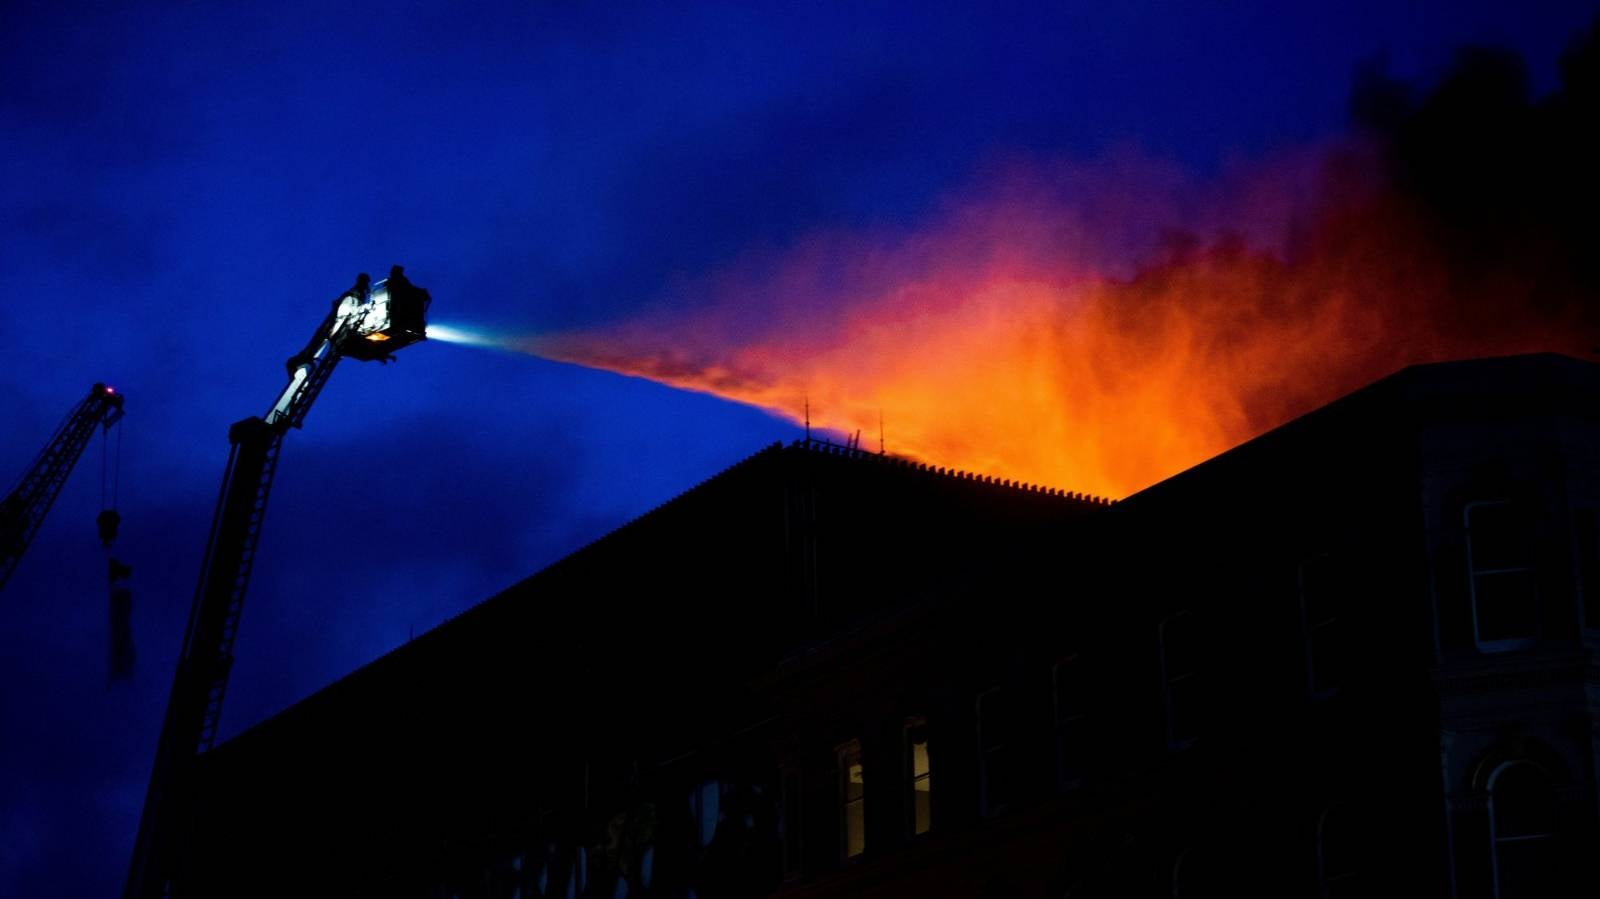 SkyCity construction boss was six days into new job when fire broke out